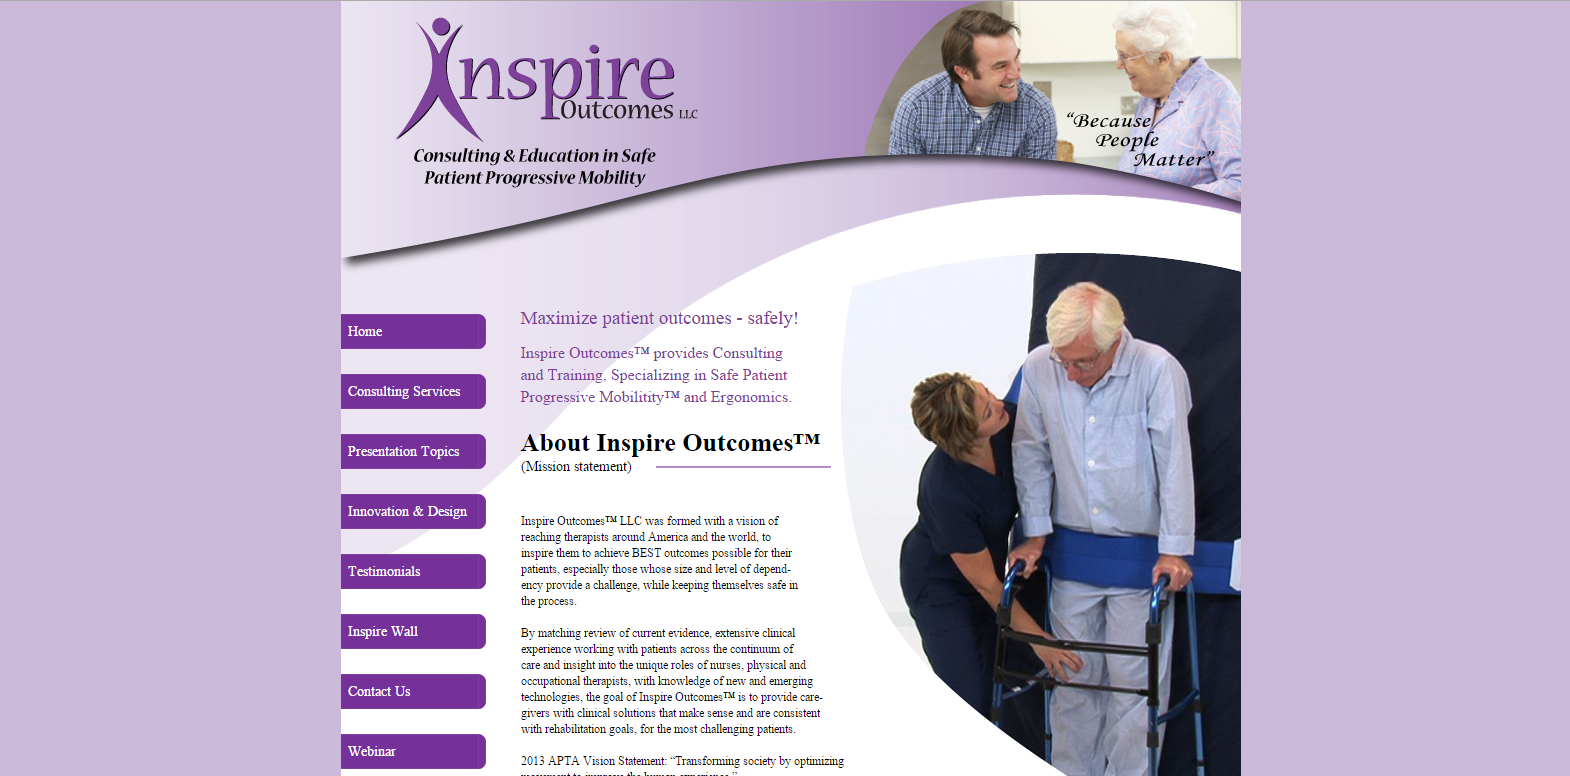 Inspire Outcomes Old Site Screenshot 1.png